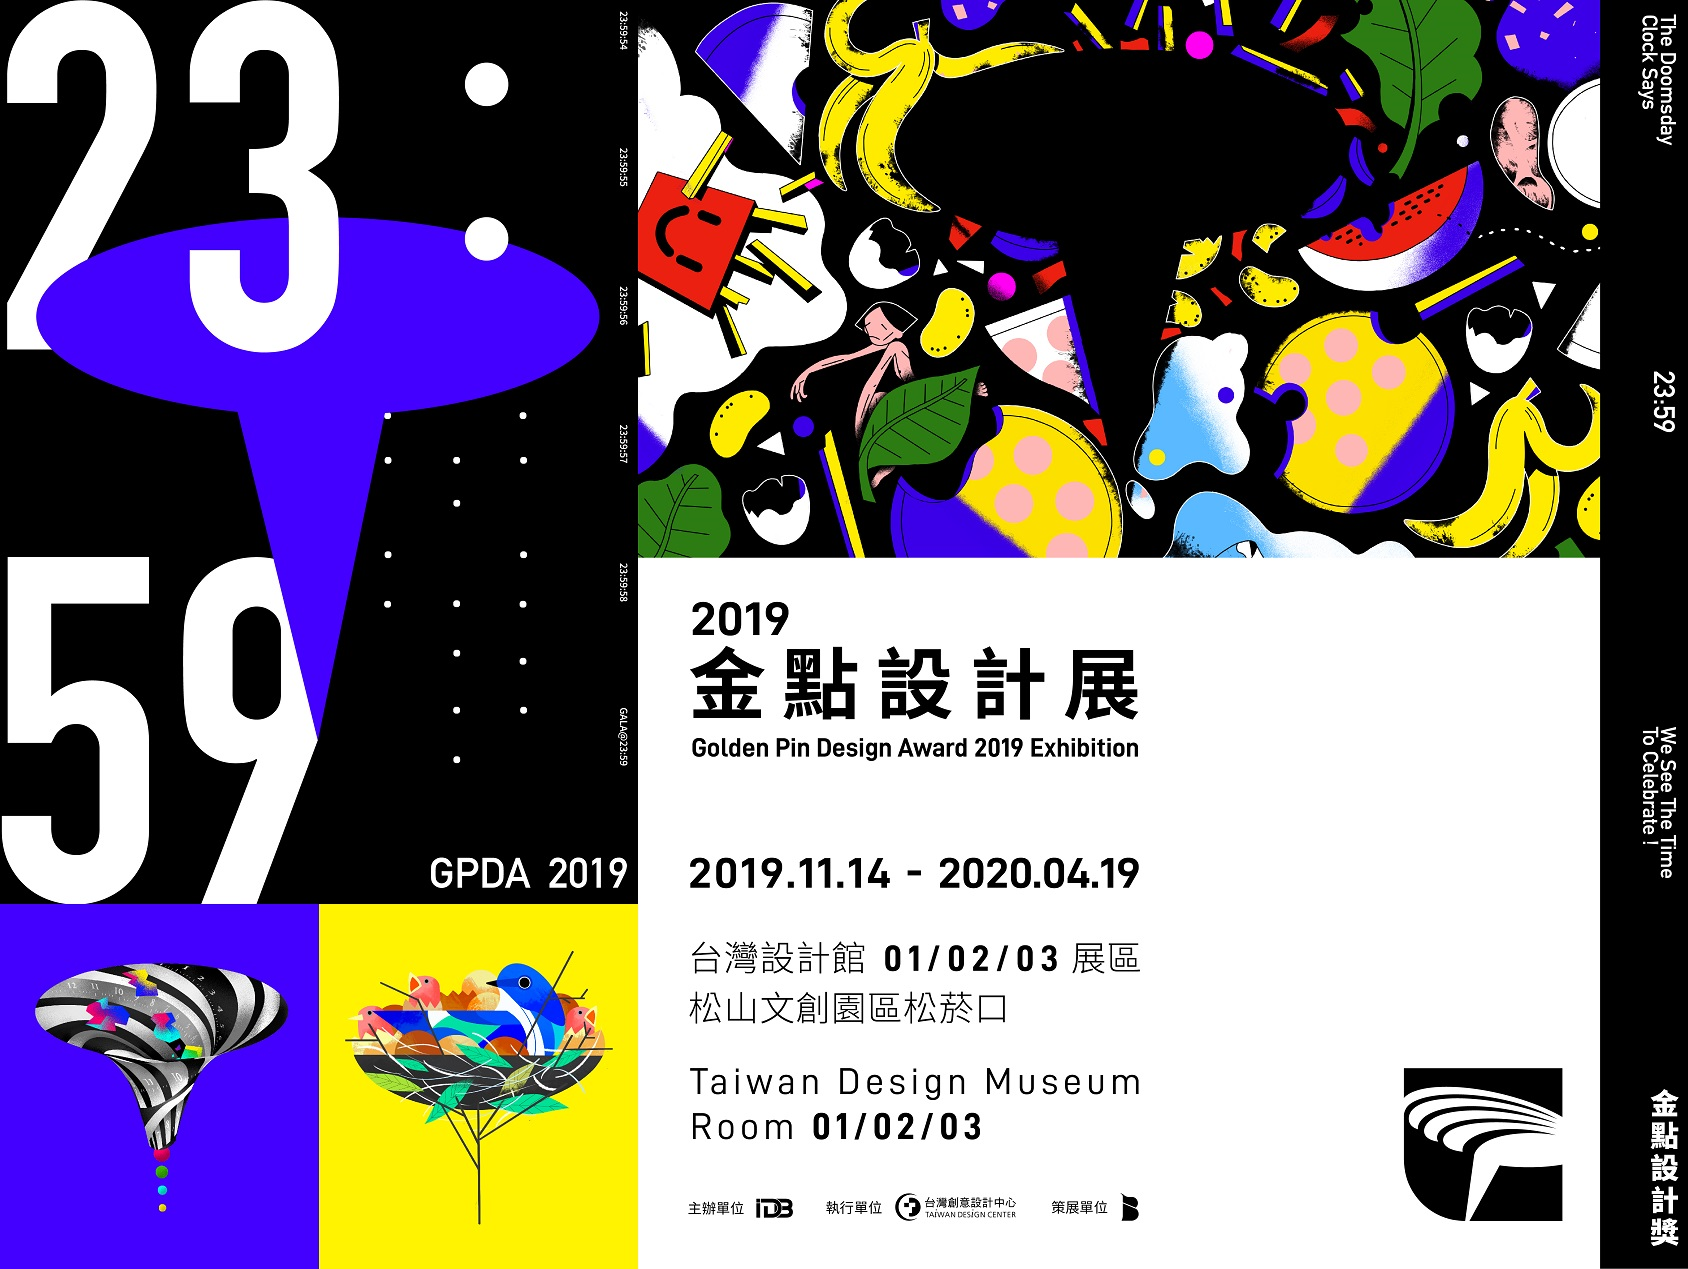 """Gala @ 23:59"" Serves Up a Feast of Design at the Golden Pin Design Award 2019 Winners' Exhibition"